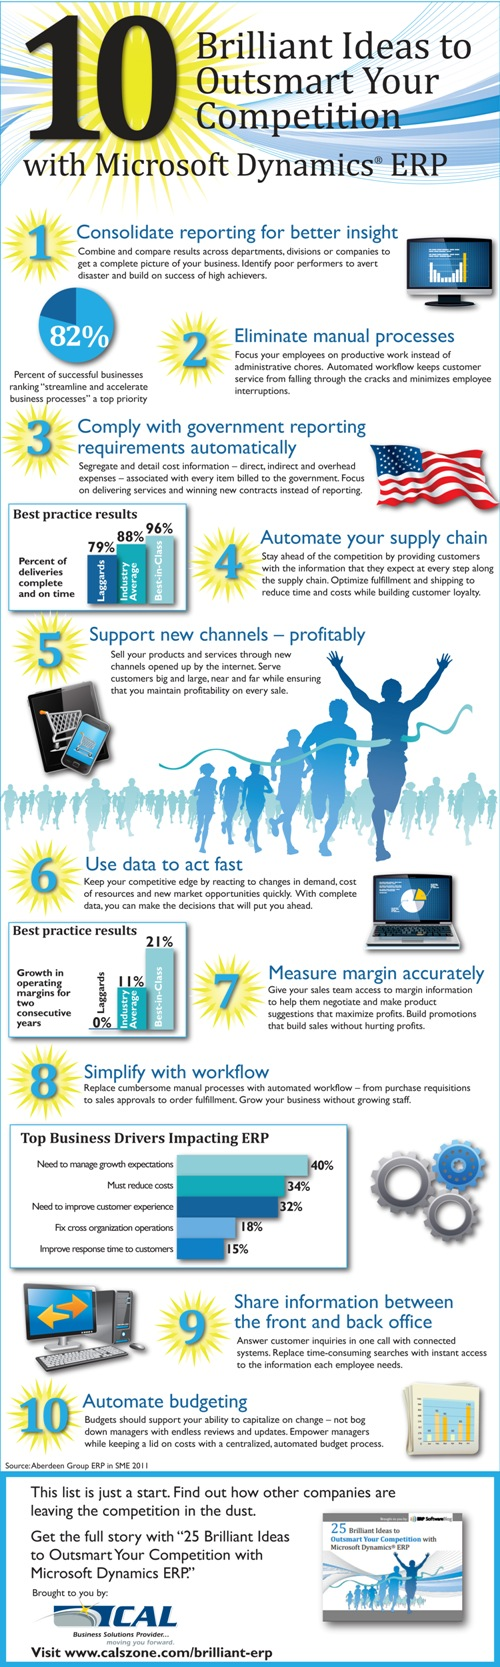 INFOGRAPHIC: 10 Brilliant Ideas to Outsmart Your Competition with Microsoft Dynamics ERP